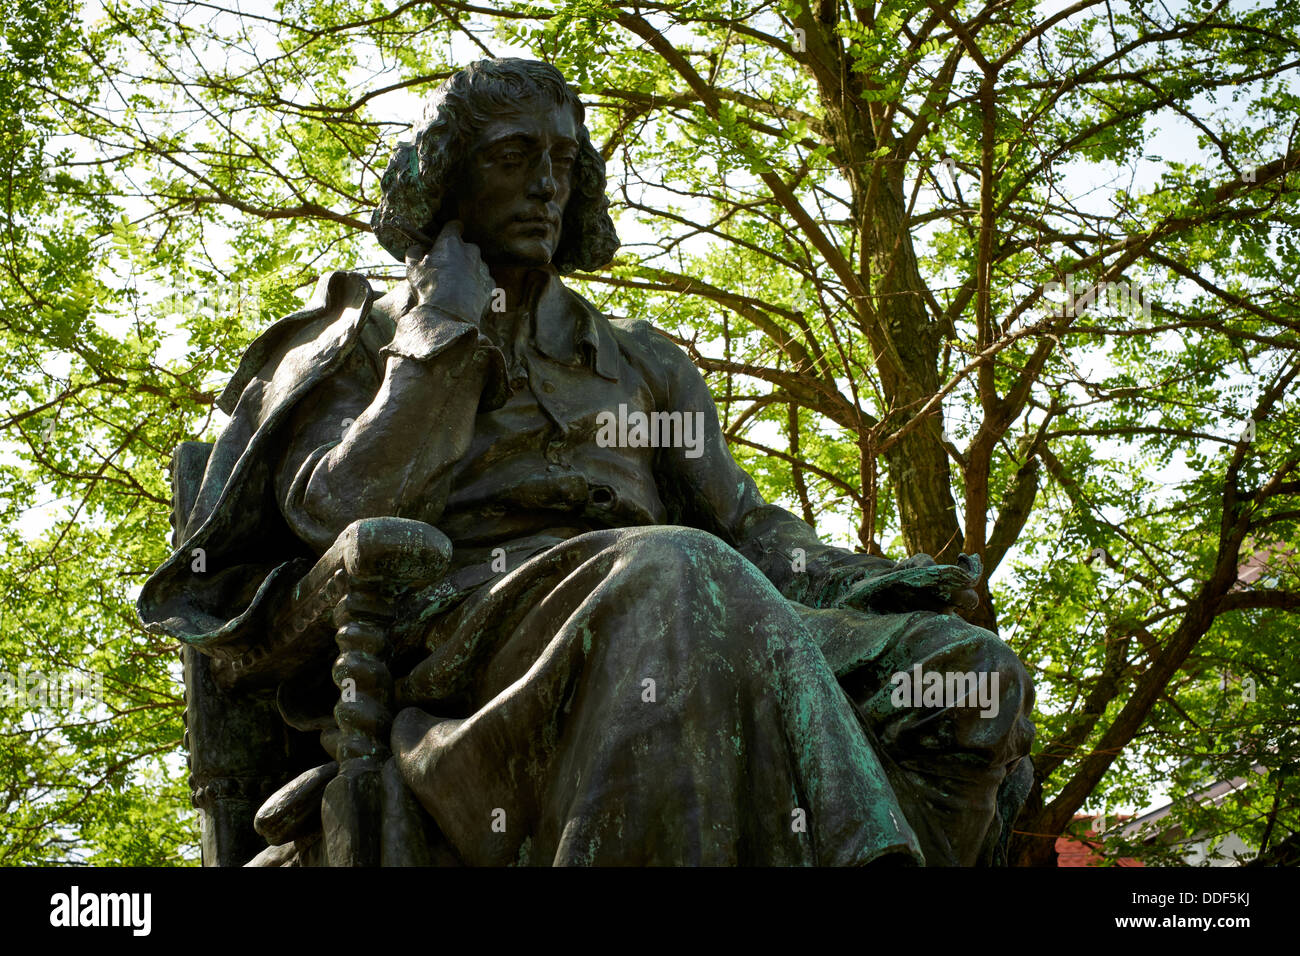 Statue of Spinoza, The Hague, Netherlands - Stock Image